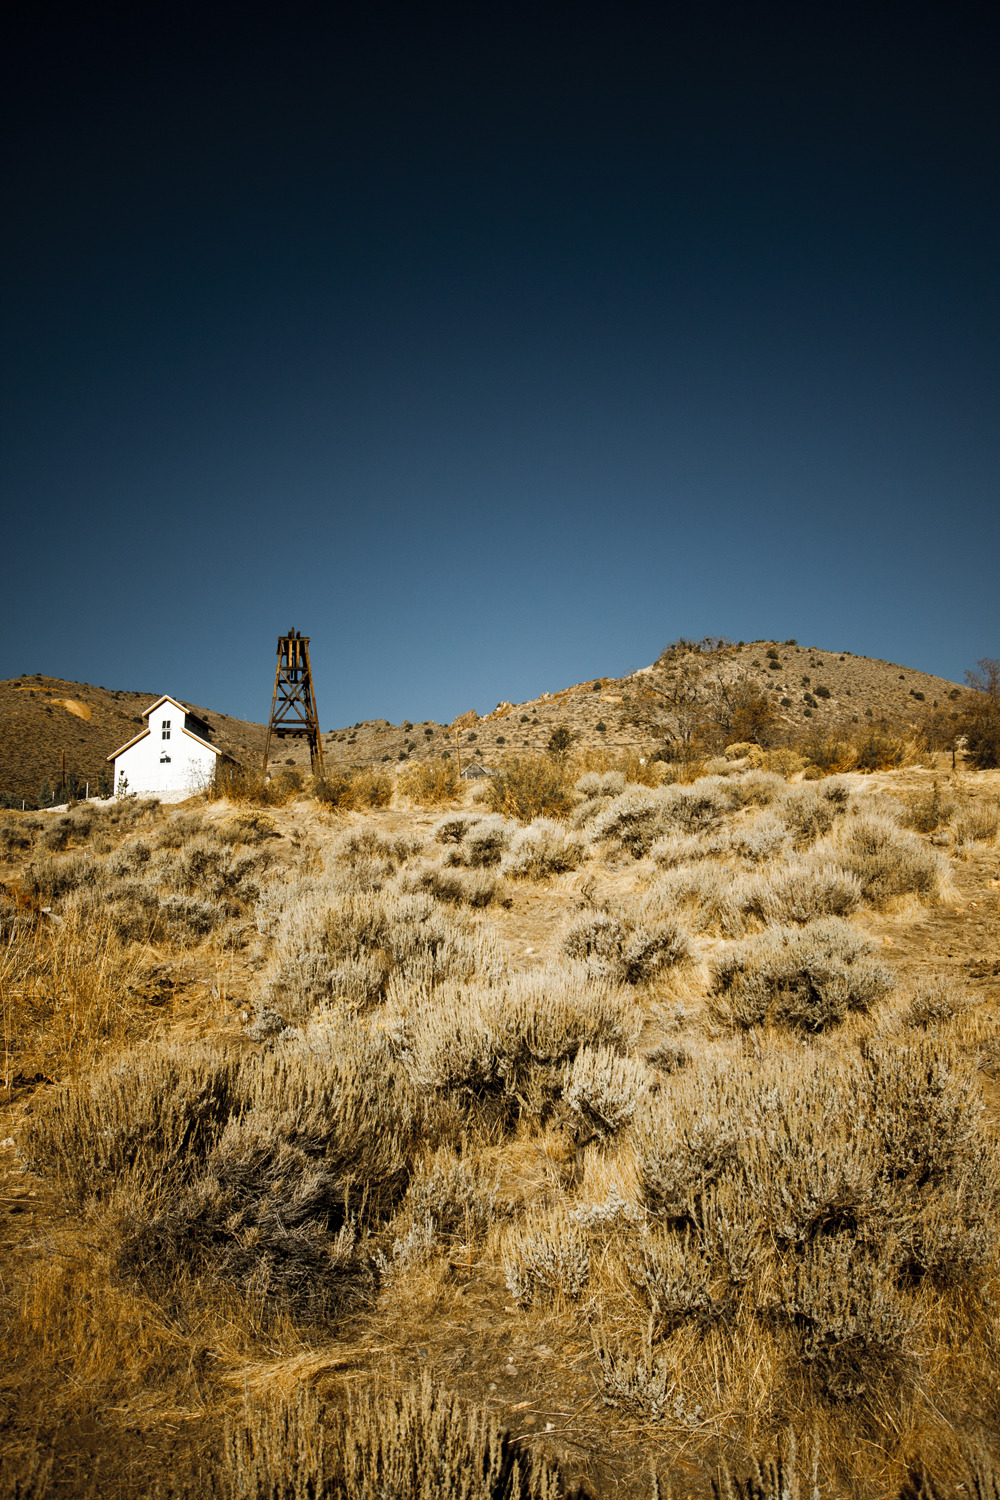 lensblr-network:  there will be bloodVirginia City, Nevada 2012 by Diana K. Garrett  (dianakgarrettphotography.tumblr.com)